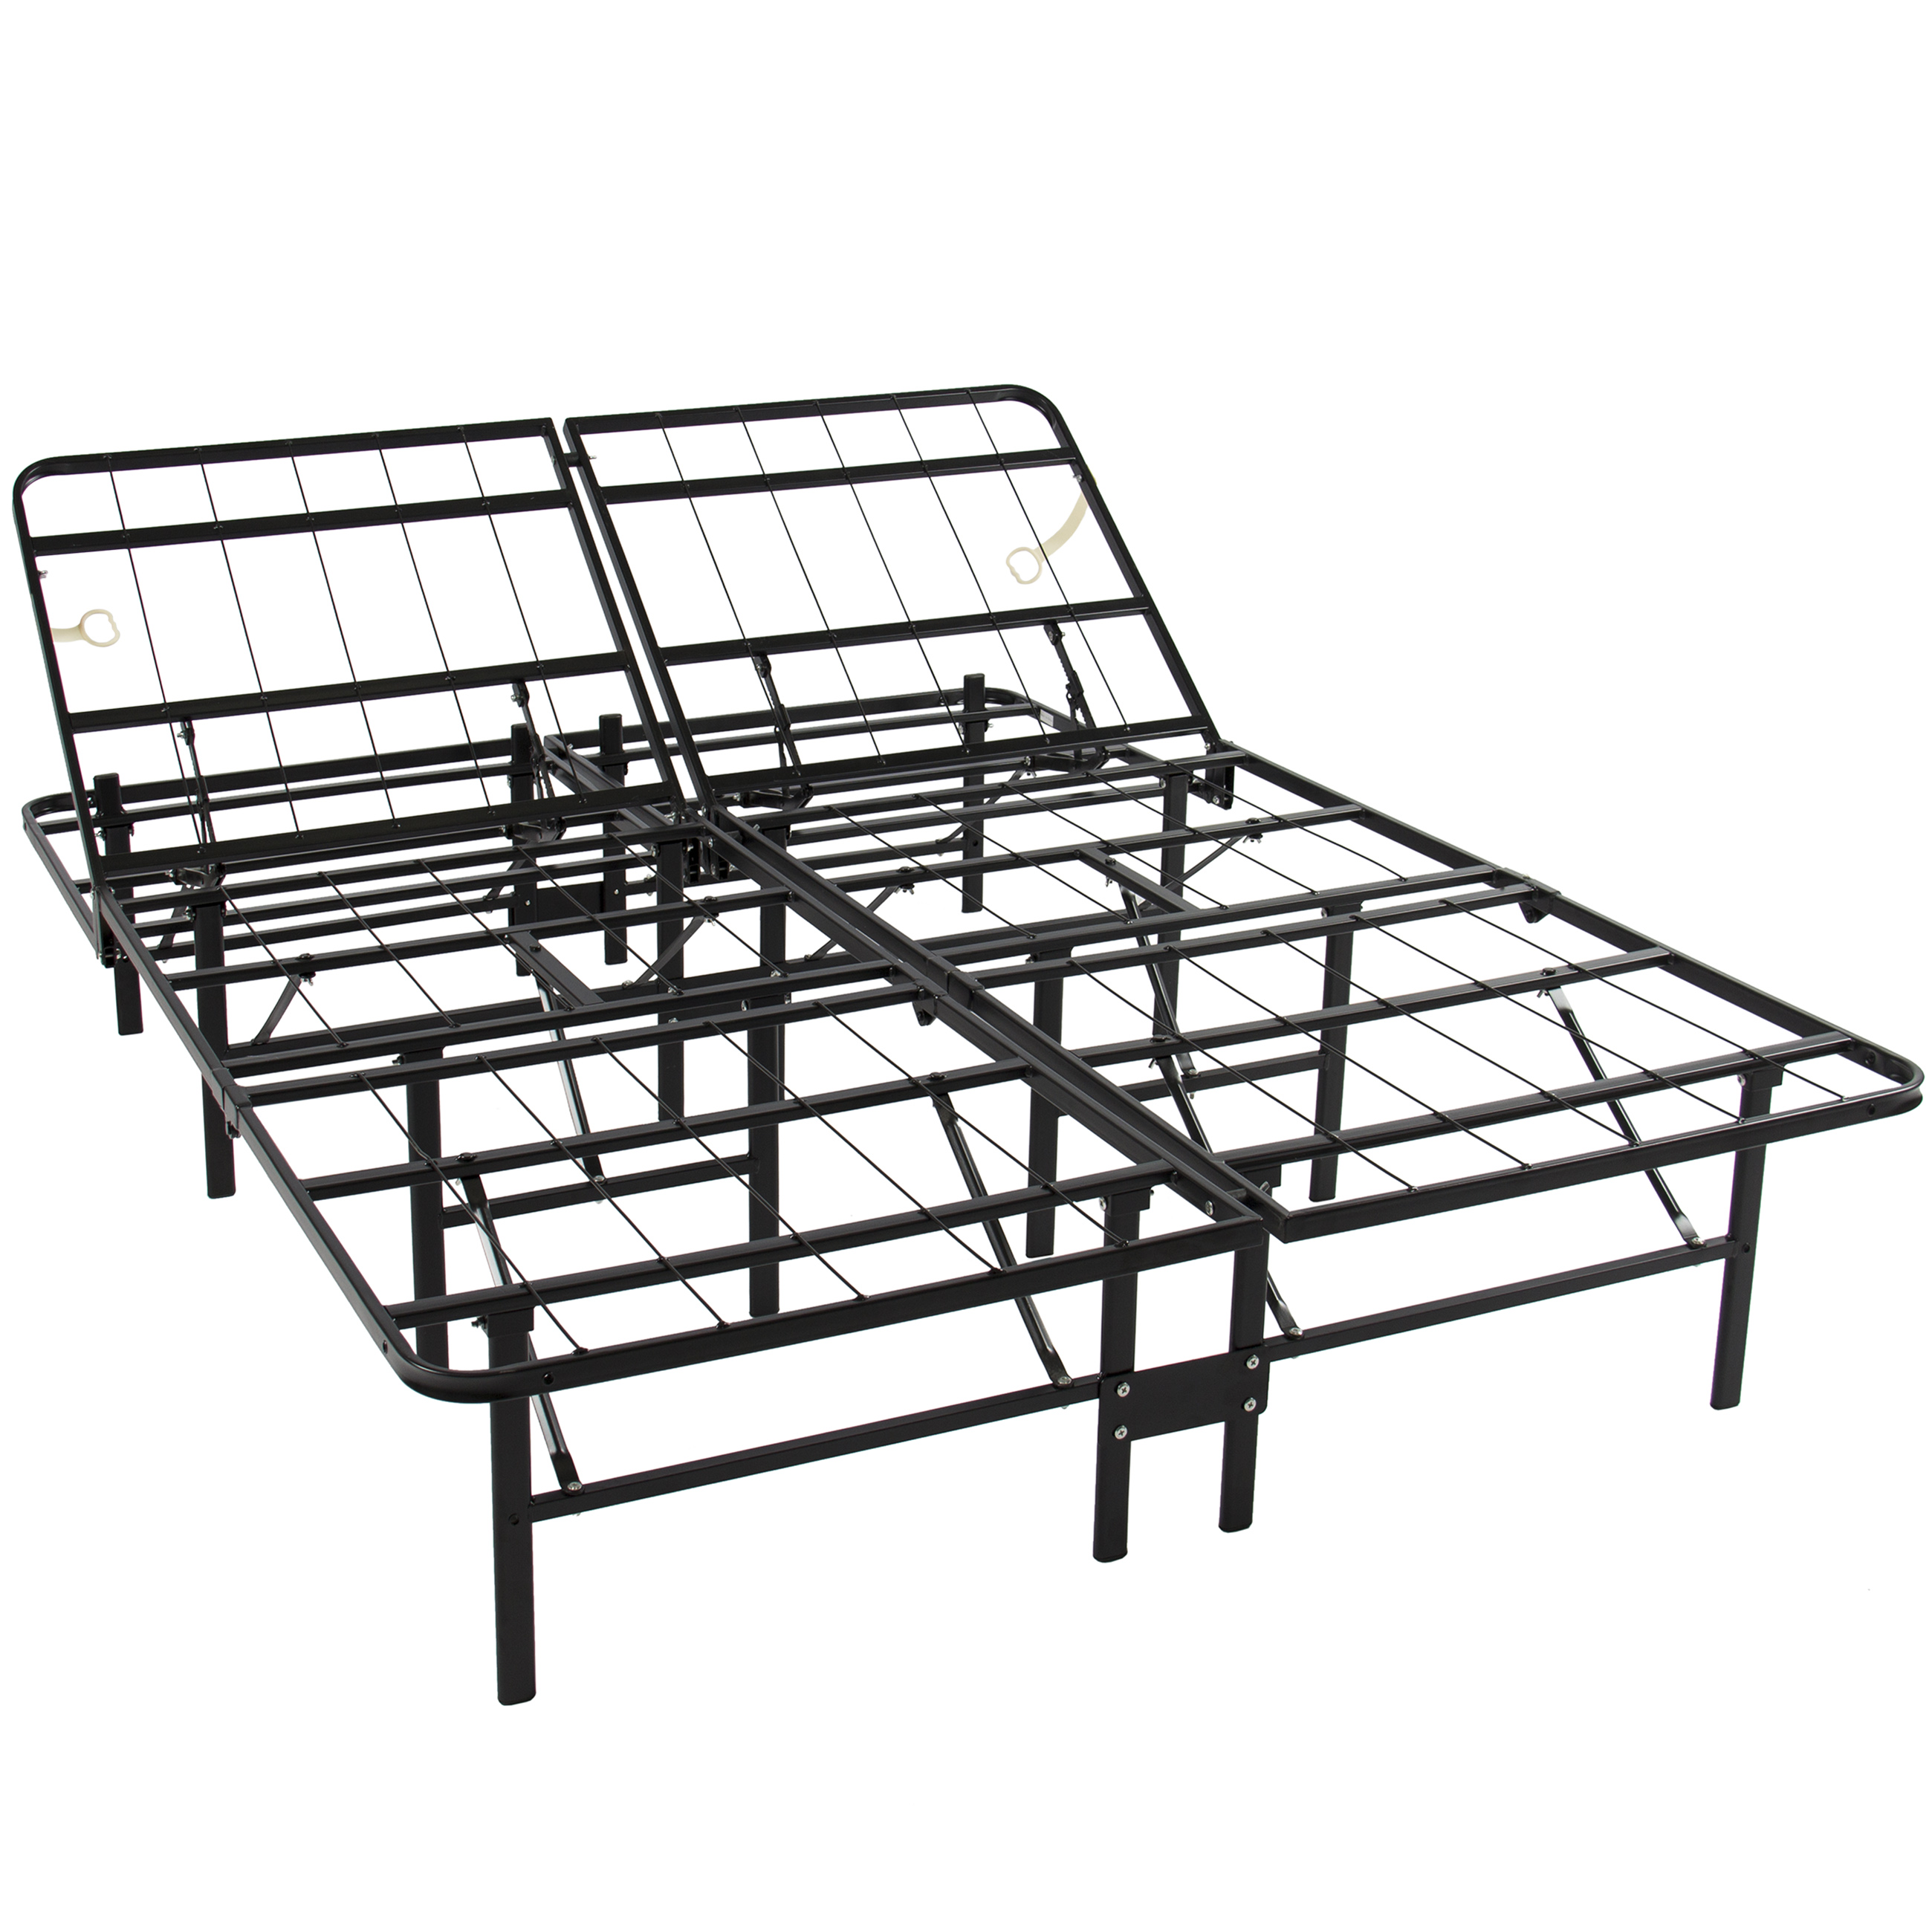 - Structures Full Size Platform Bed Frame And Box Spring In One